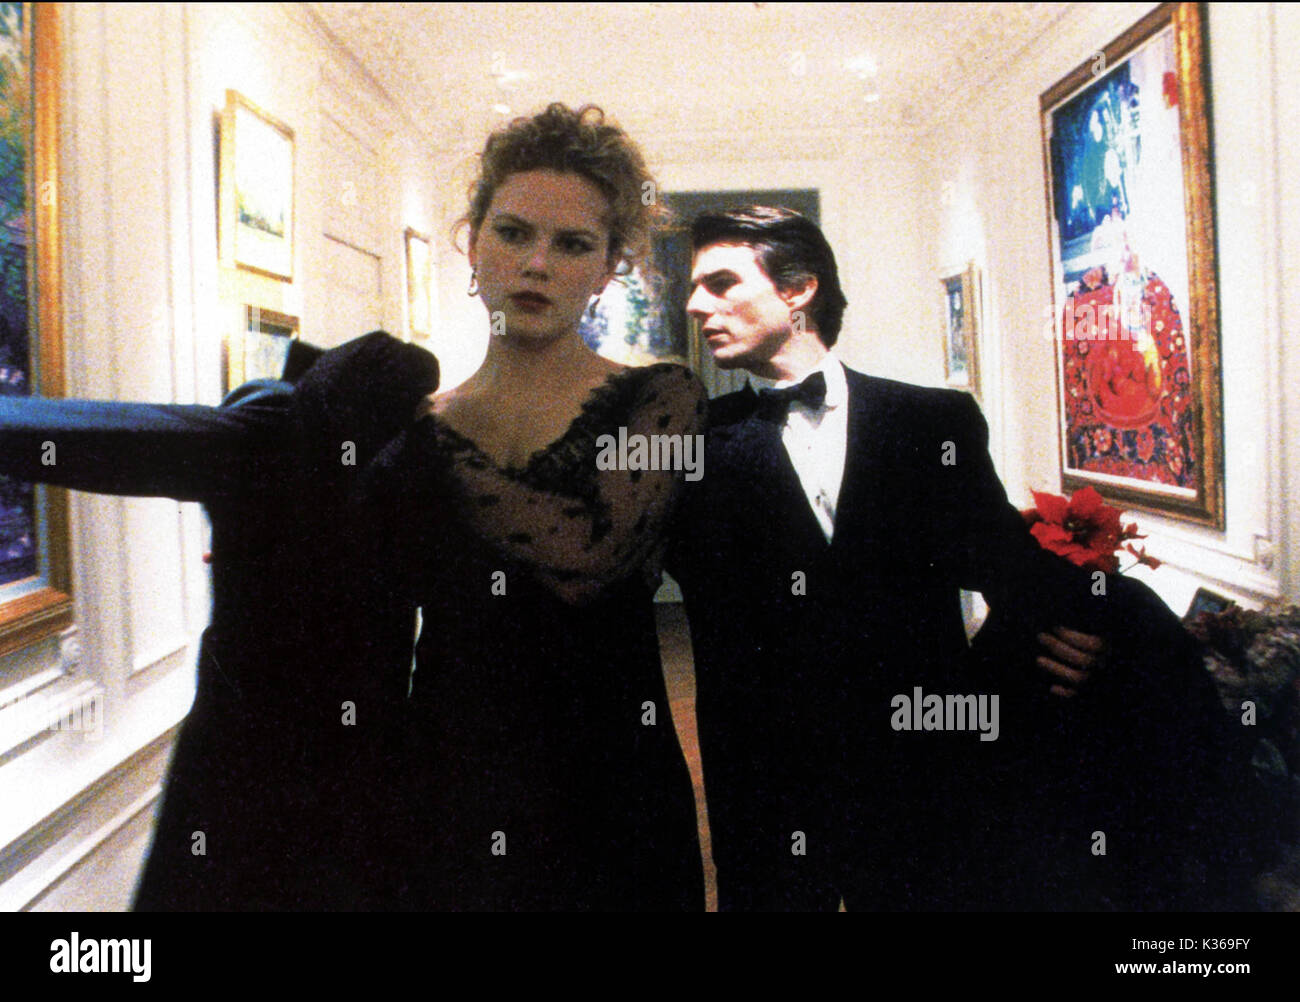 EYES WIDE SHUT NICOLE KIDMAN, TOM CRUISE     Date: 2000 - Stock Image